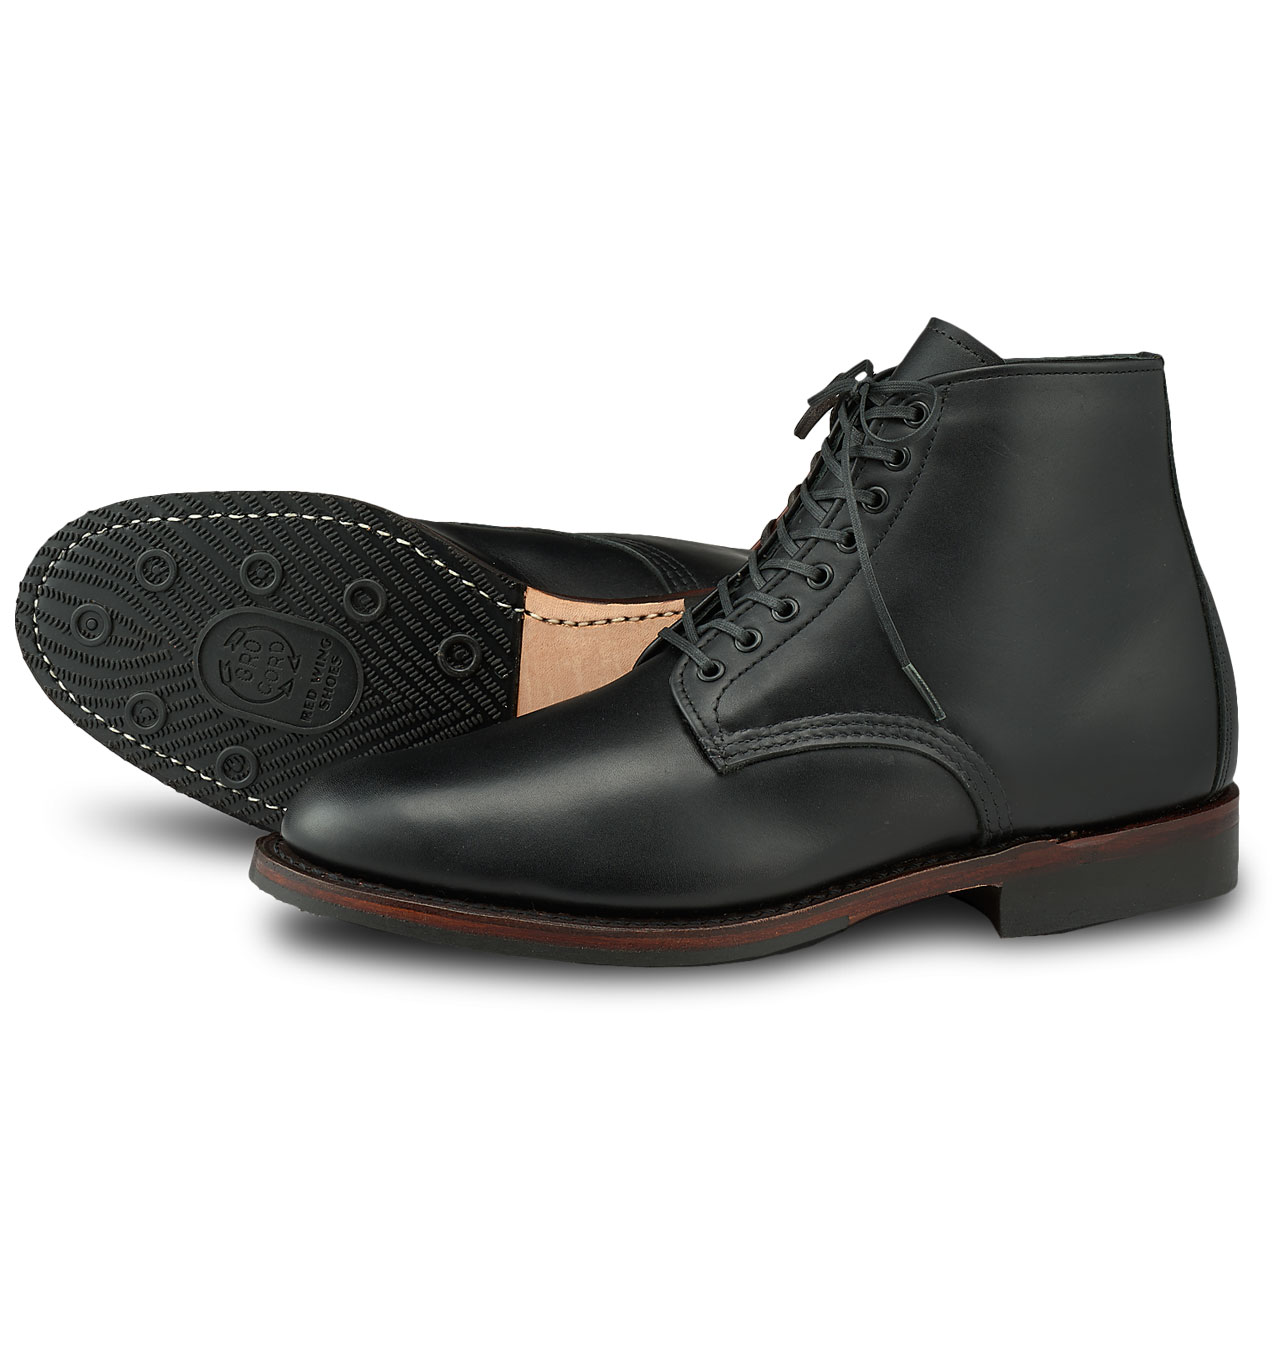 Red Wing Shoes 9436 Williston 6-inch - Black Featherstone